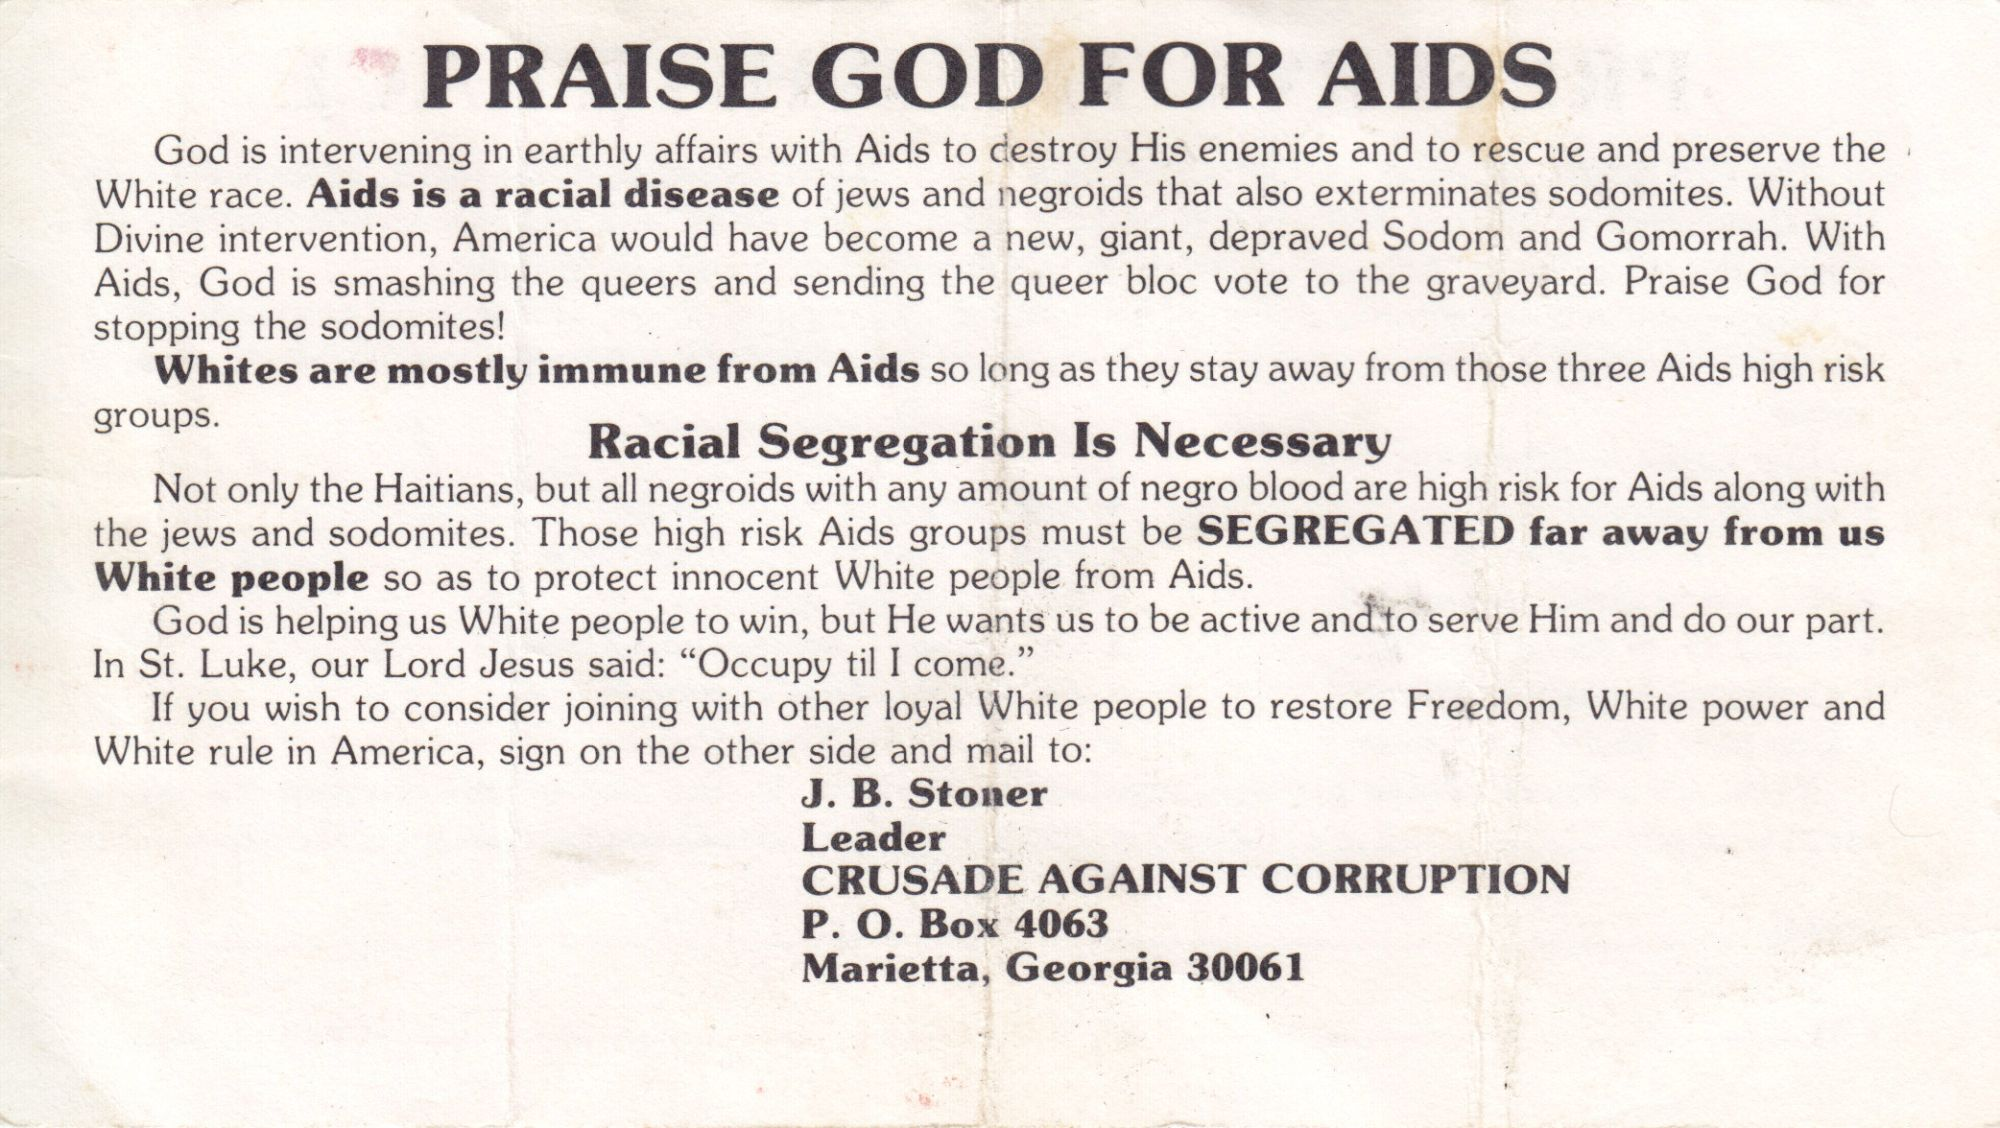 [Hate][Civil Rights][Lgbtq][Aids]praise God for AIDS.